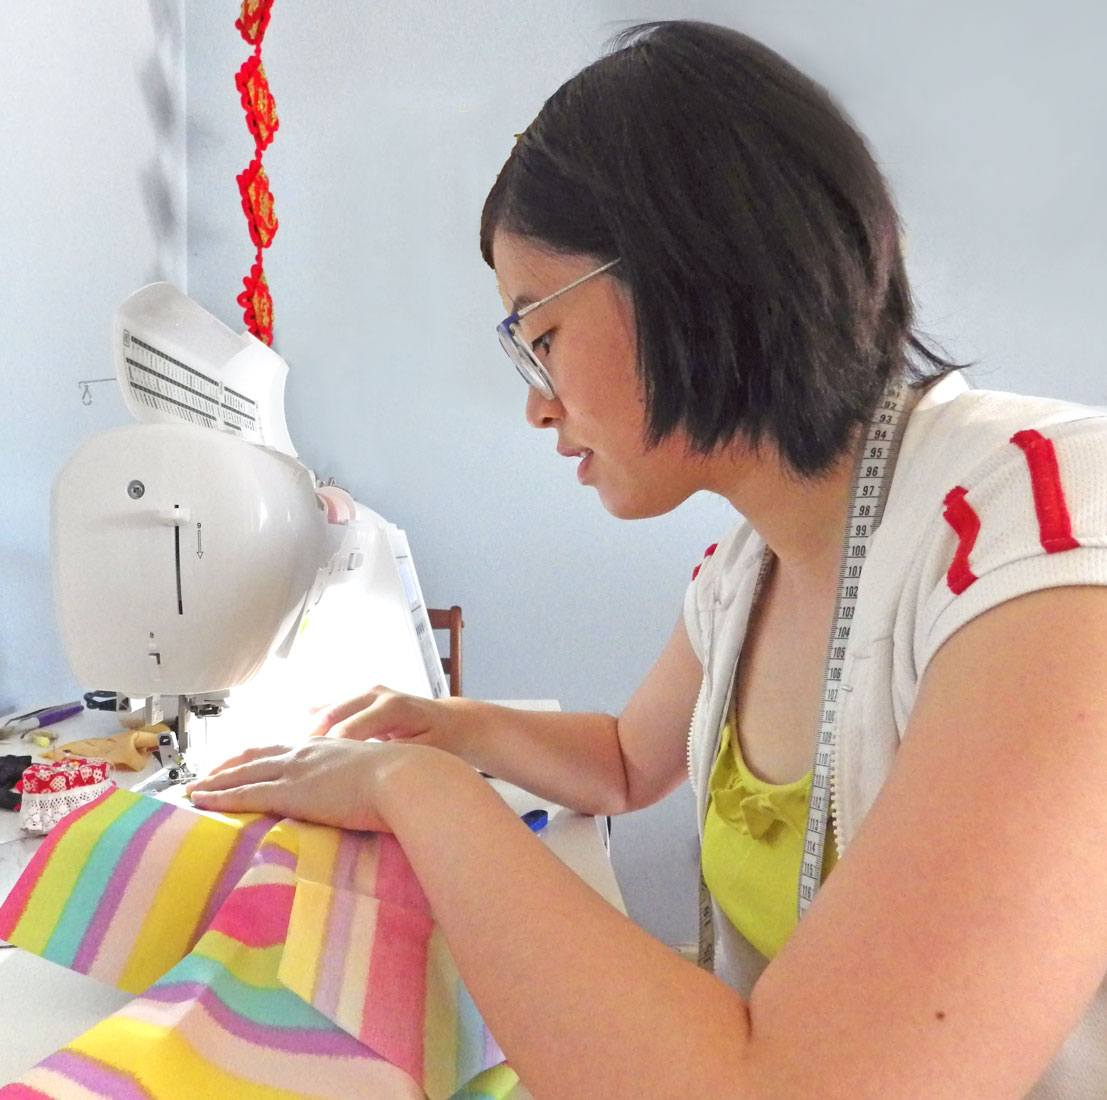 Christina, designer and maker of CLEAN the Label, working at her sewing machine on a brightly striped shirt